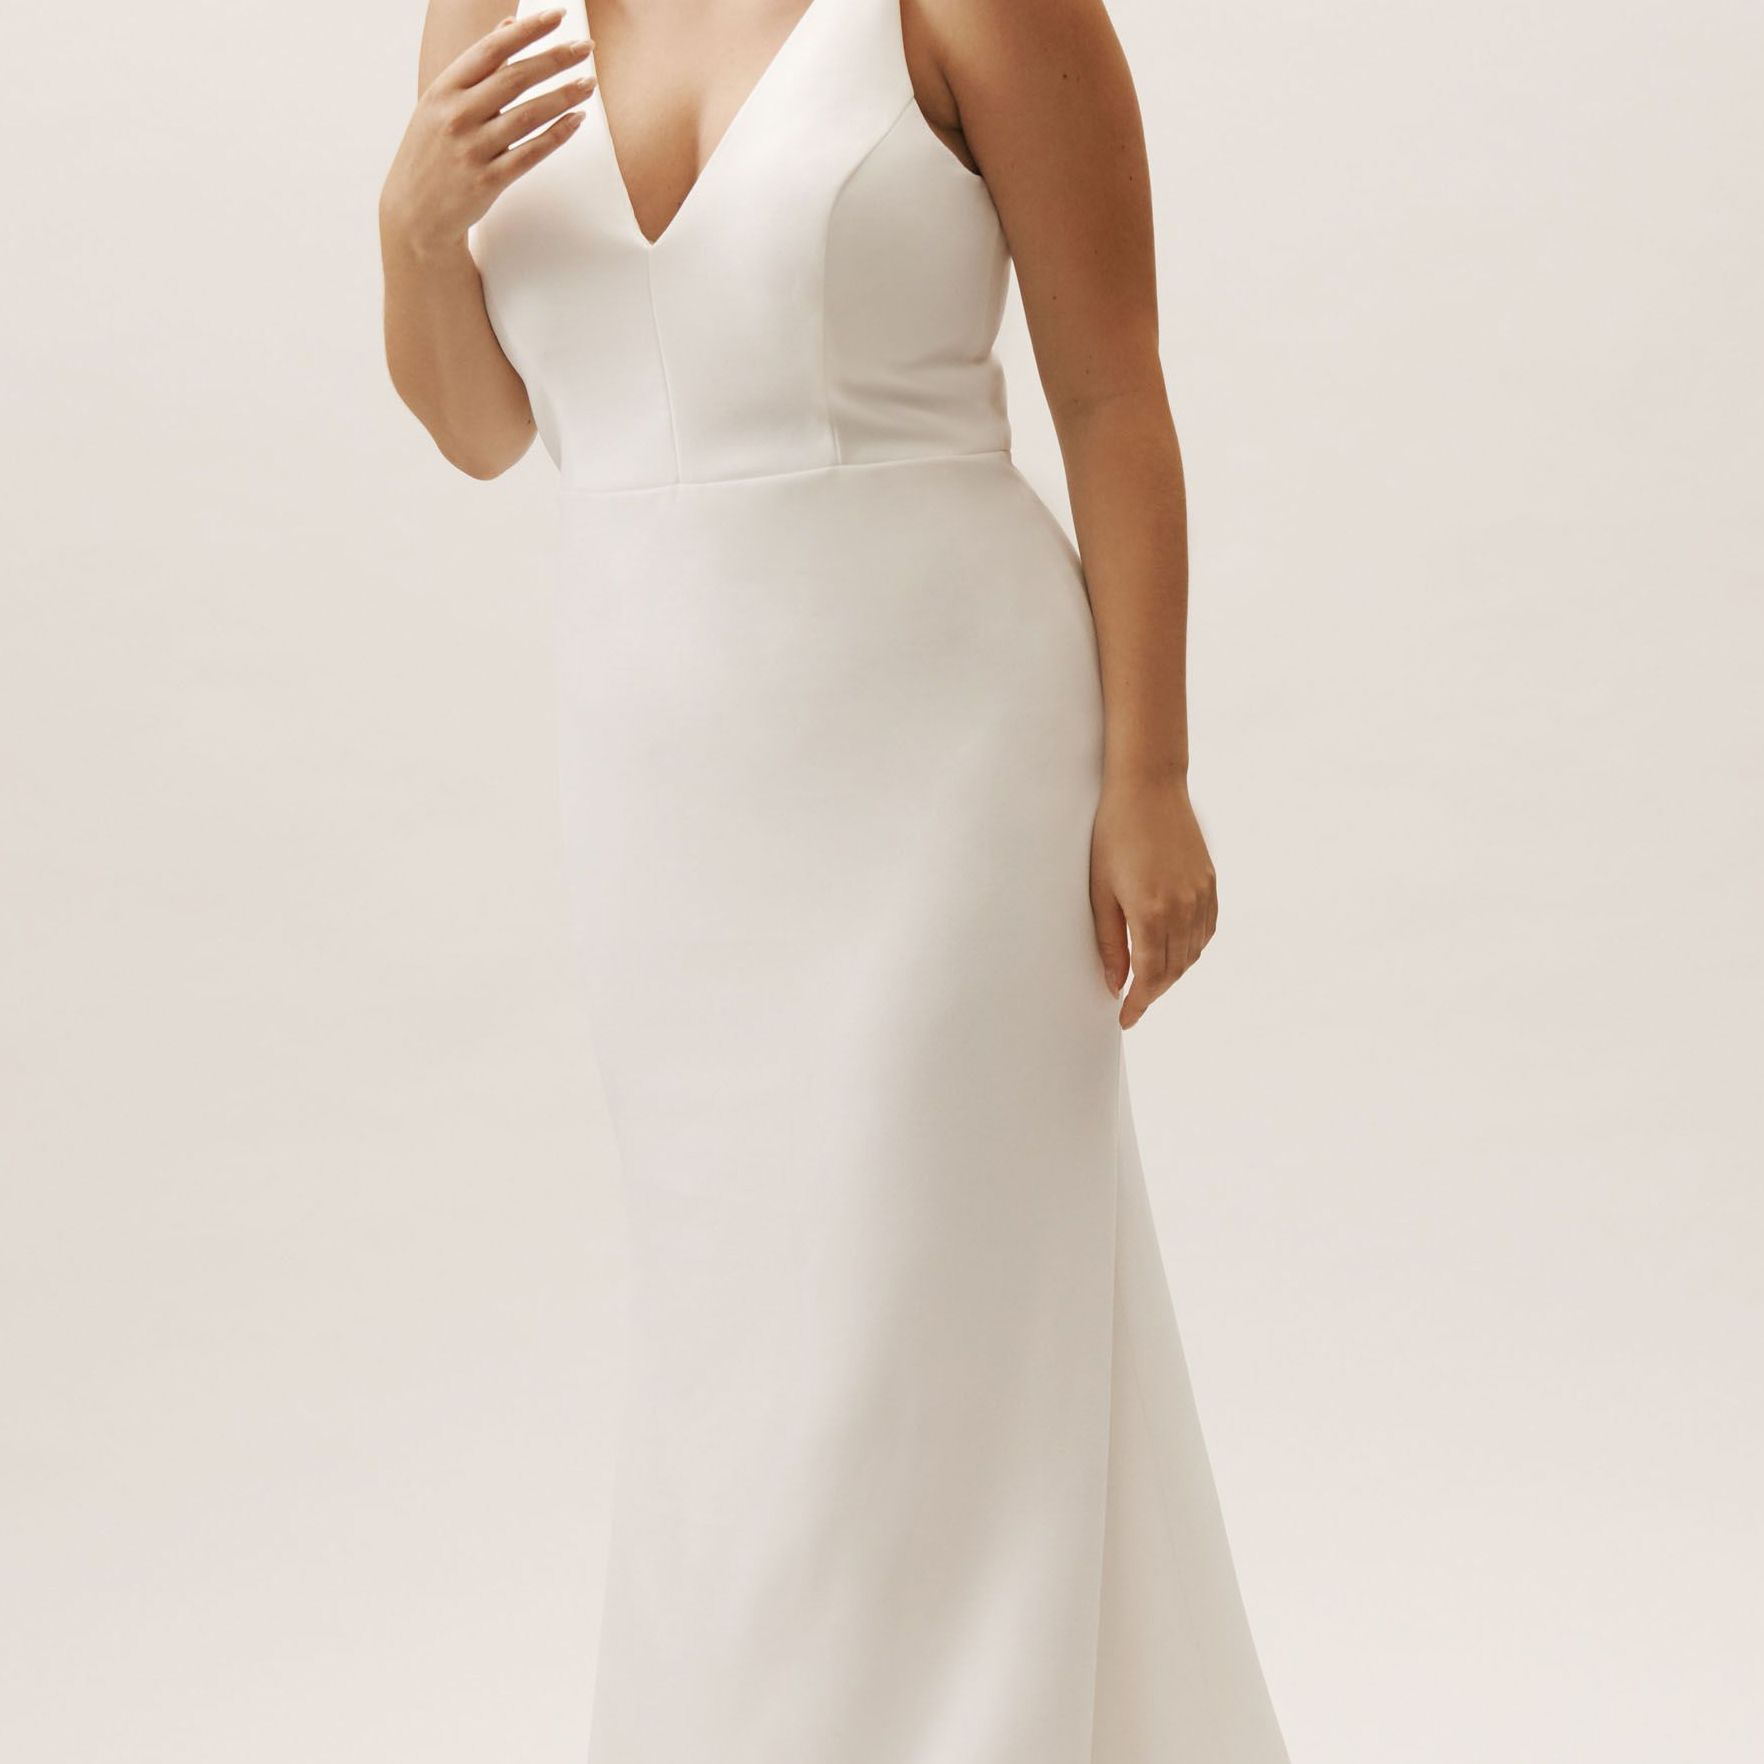 The 27 Best Plus Size Wedding Dresses Of 2020,Wedding Dresses Manchester Nh